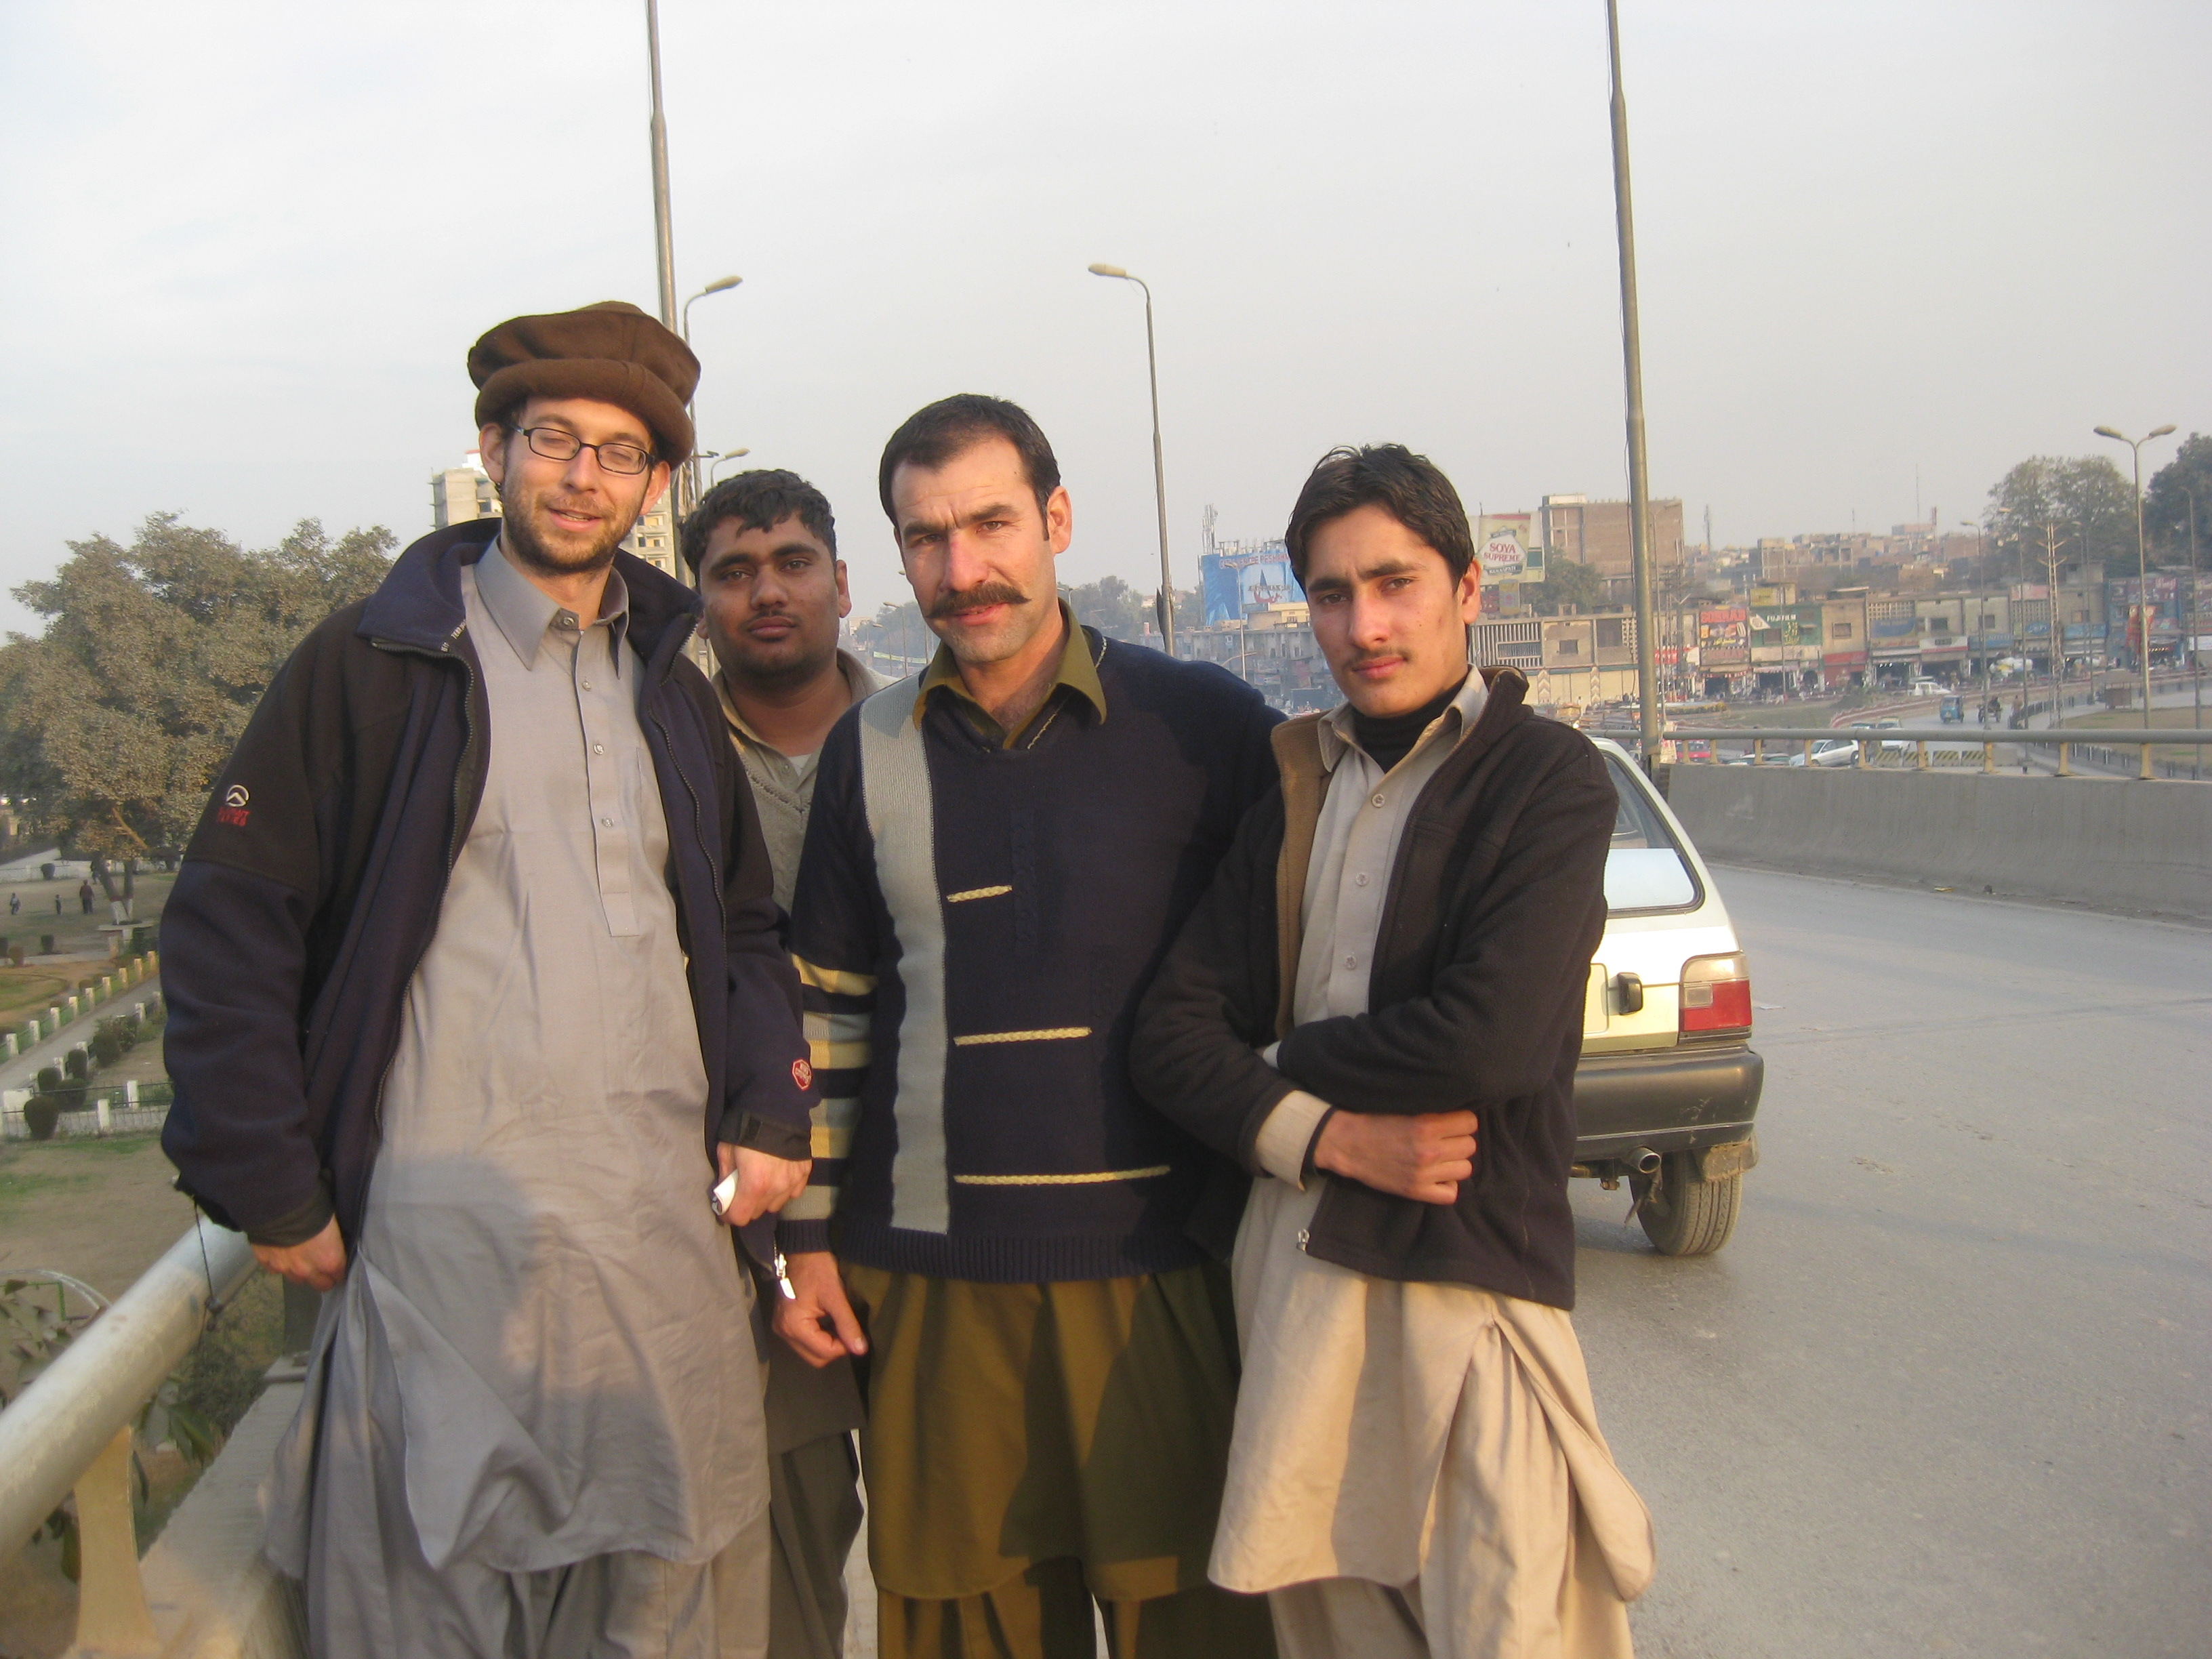 Some friendly people on the streets of Peshawar.